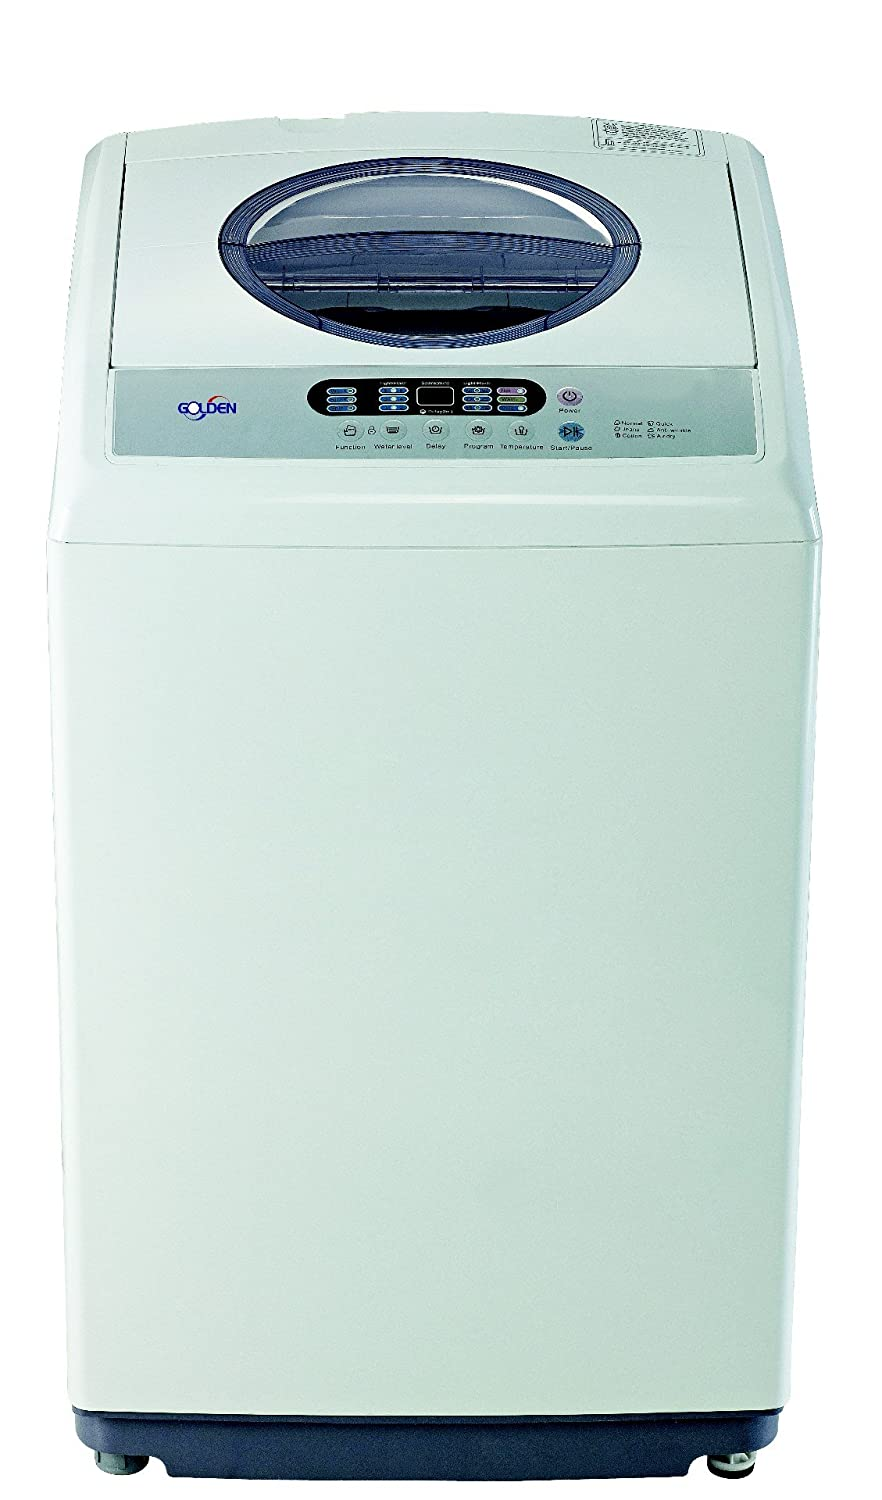 Golden (1.6 Cf - 11 Lbs) Portable Washer Machine GLP11E Mini Washing Machine Automatic - White